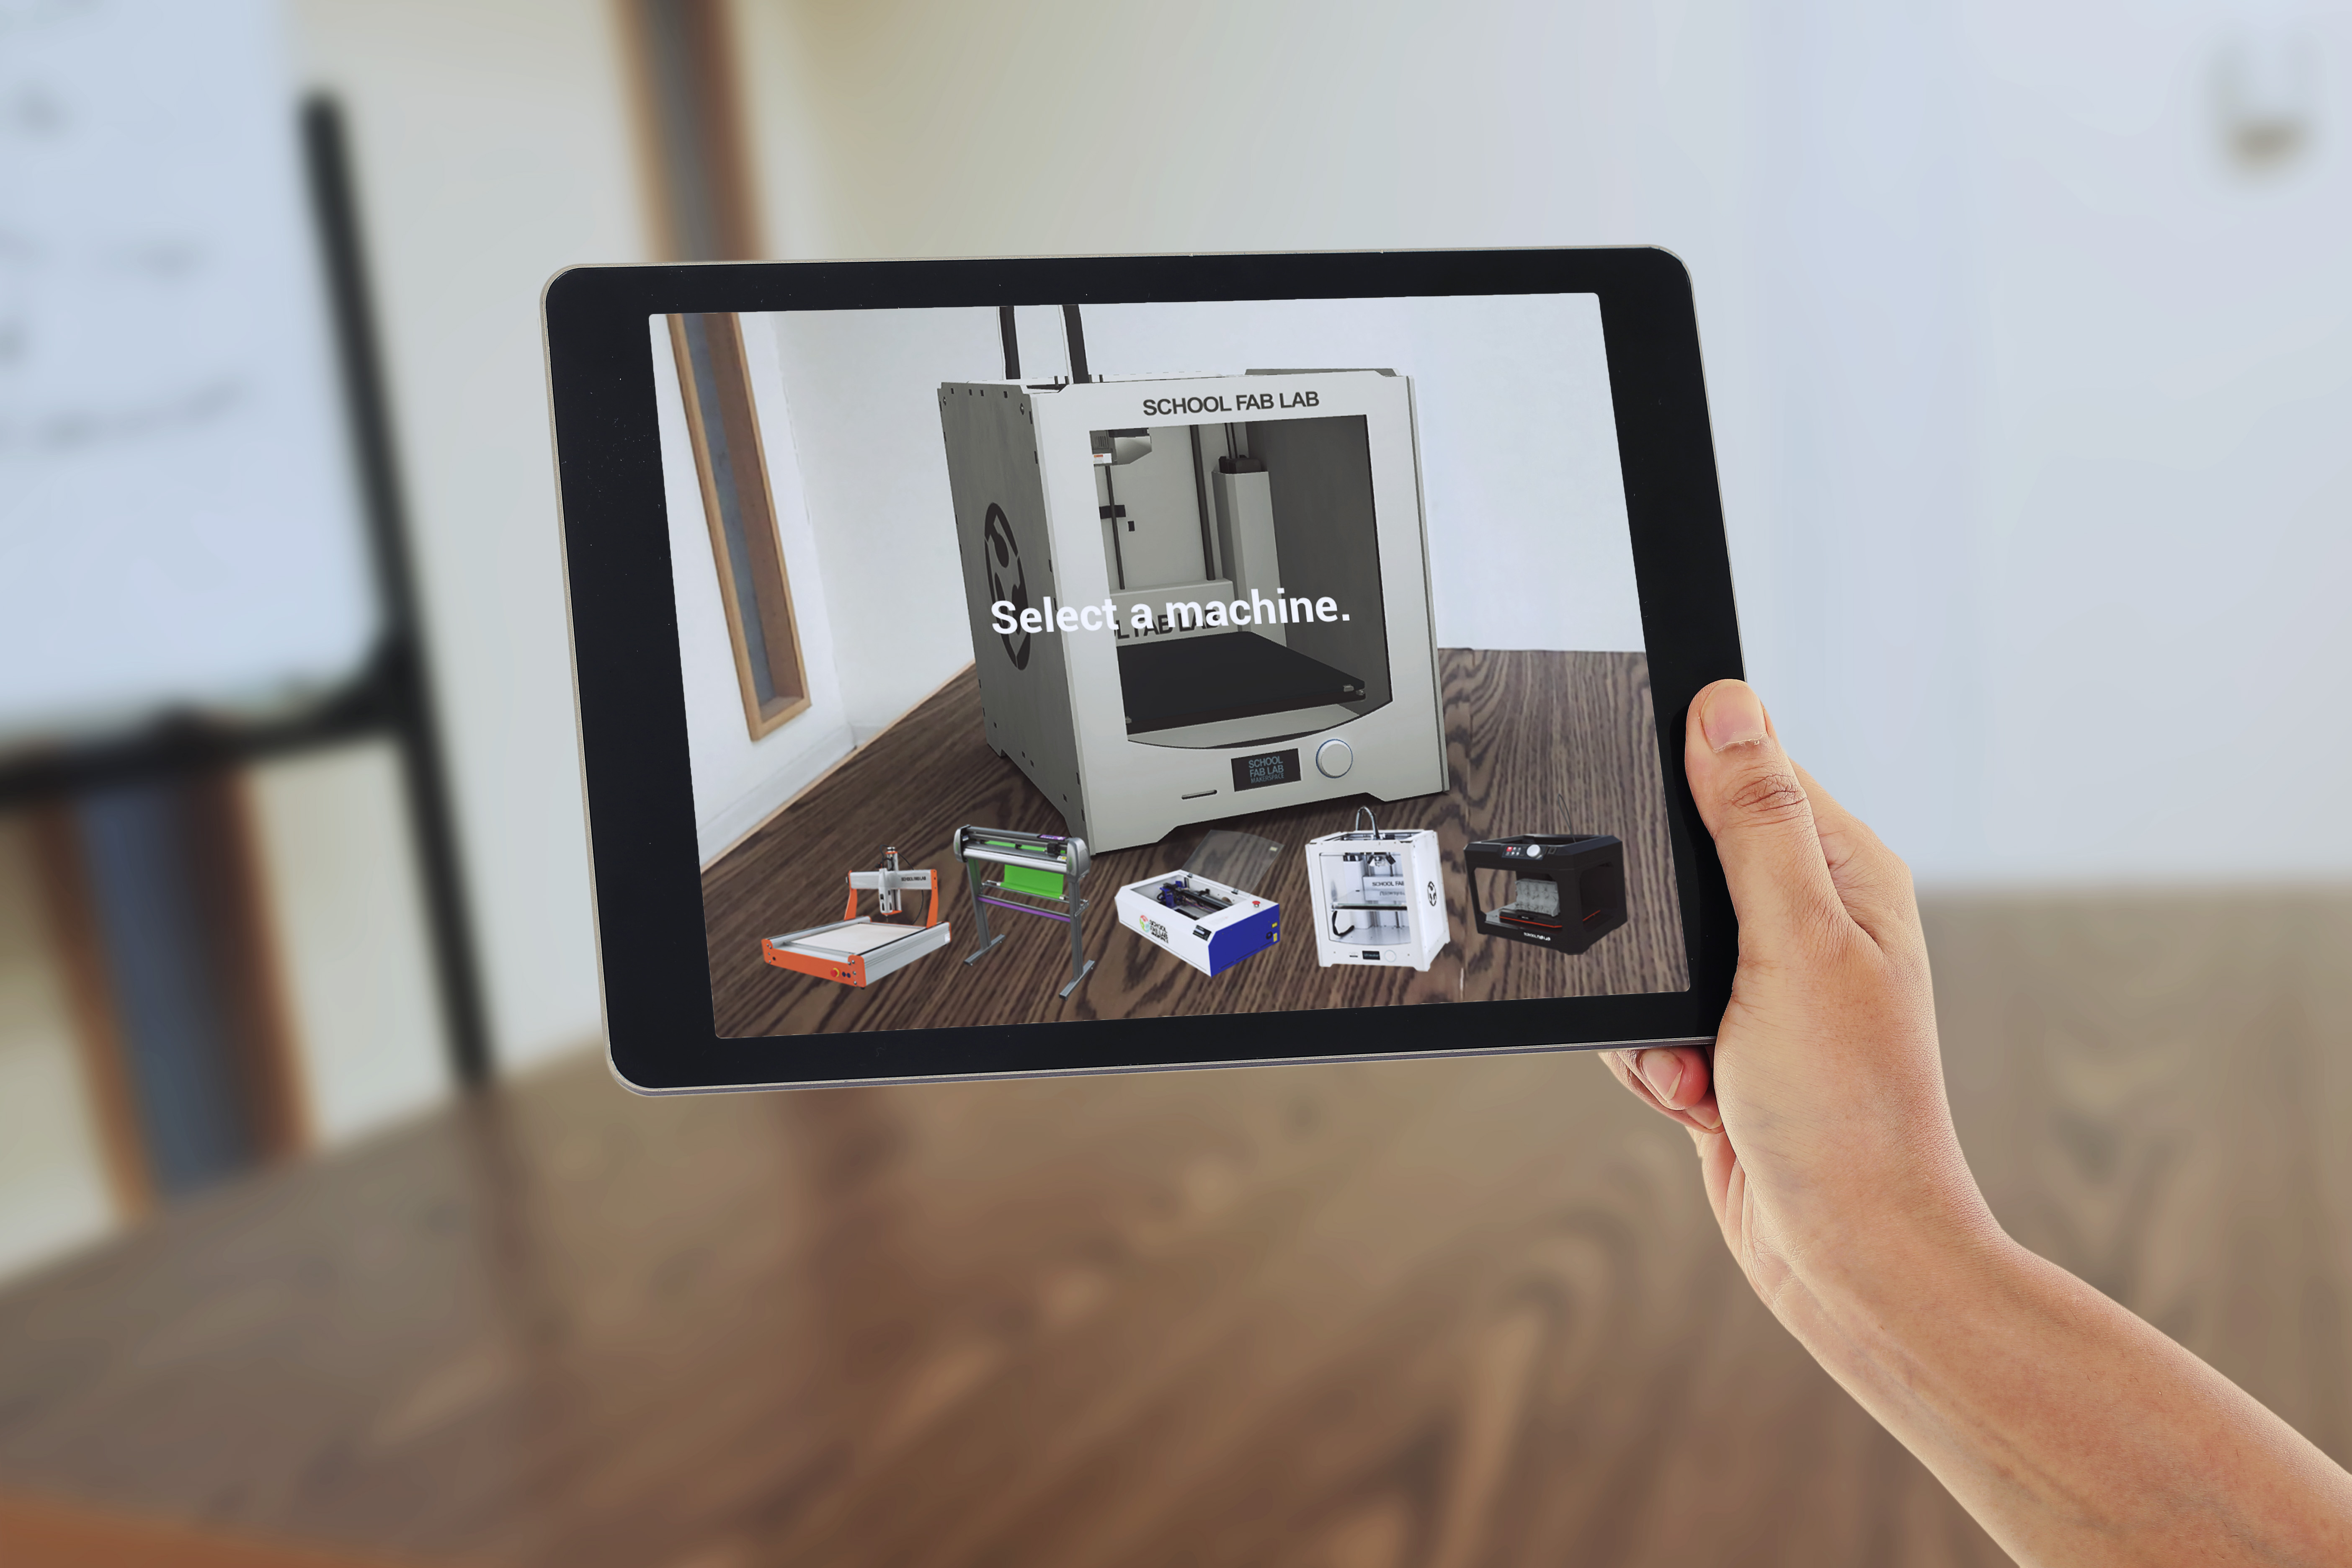 New School Fab Lab AR App Available to Demo